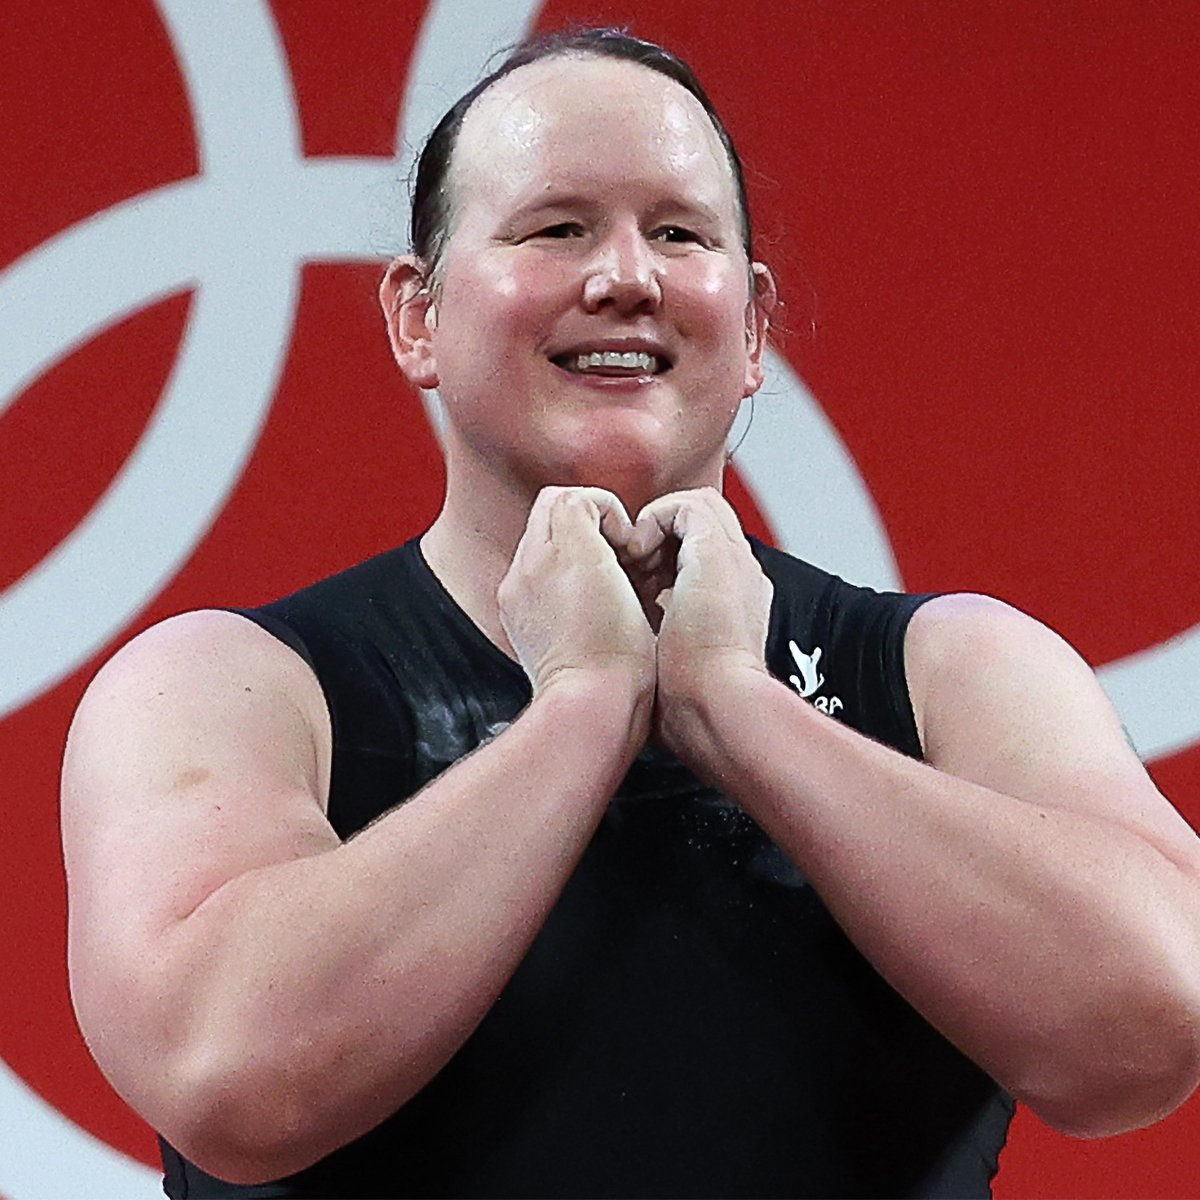 Weightlifter Laurel Hubbard Makes Olympic History as First Transgender Woman to Compete in Games